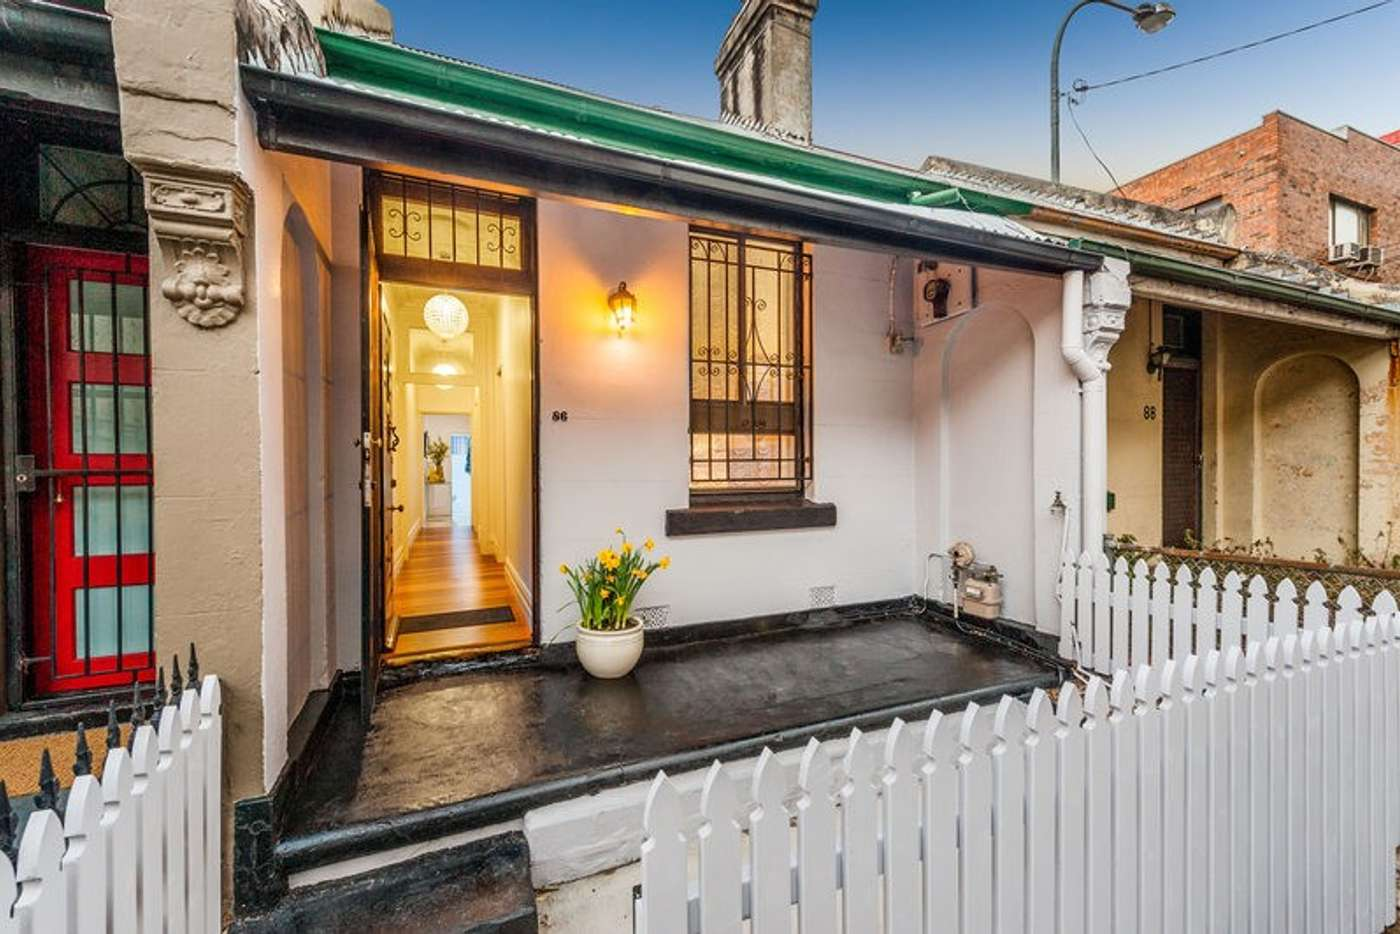 Main view of Homely house listing, 86 Church Street, Camperdown NSW 2050